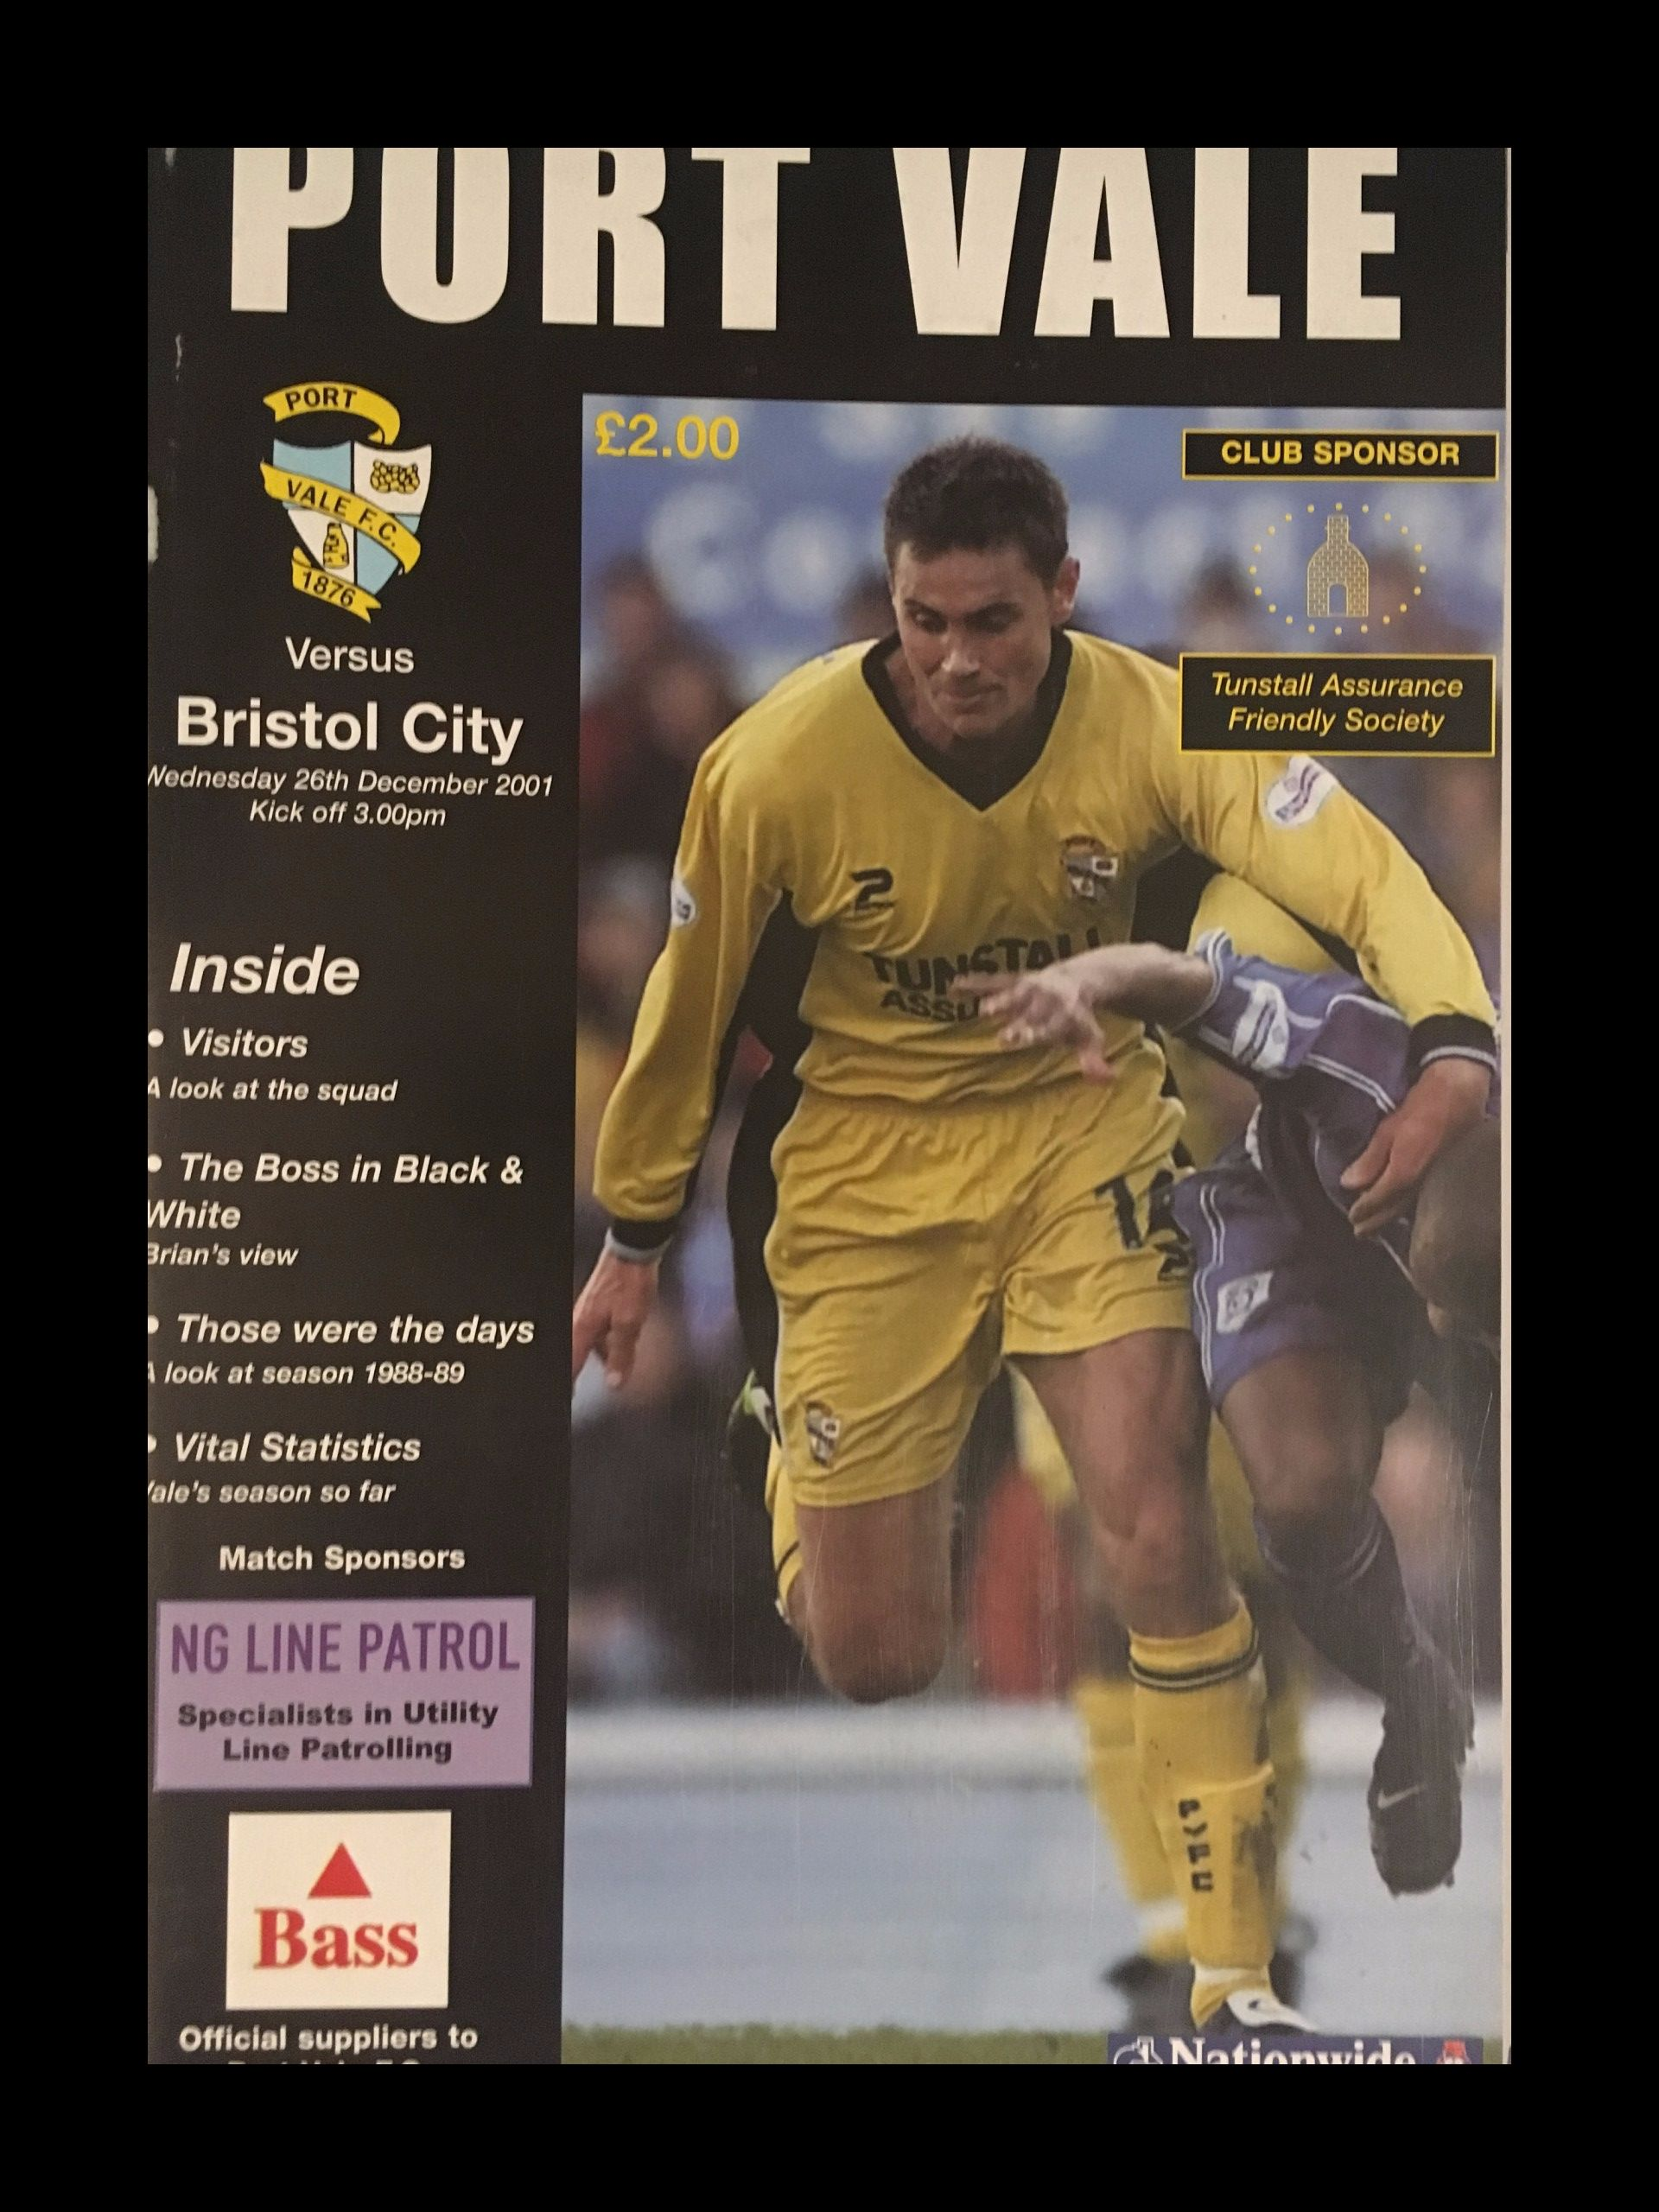 Port Vale v Bristol City 26-12-2001 Programme